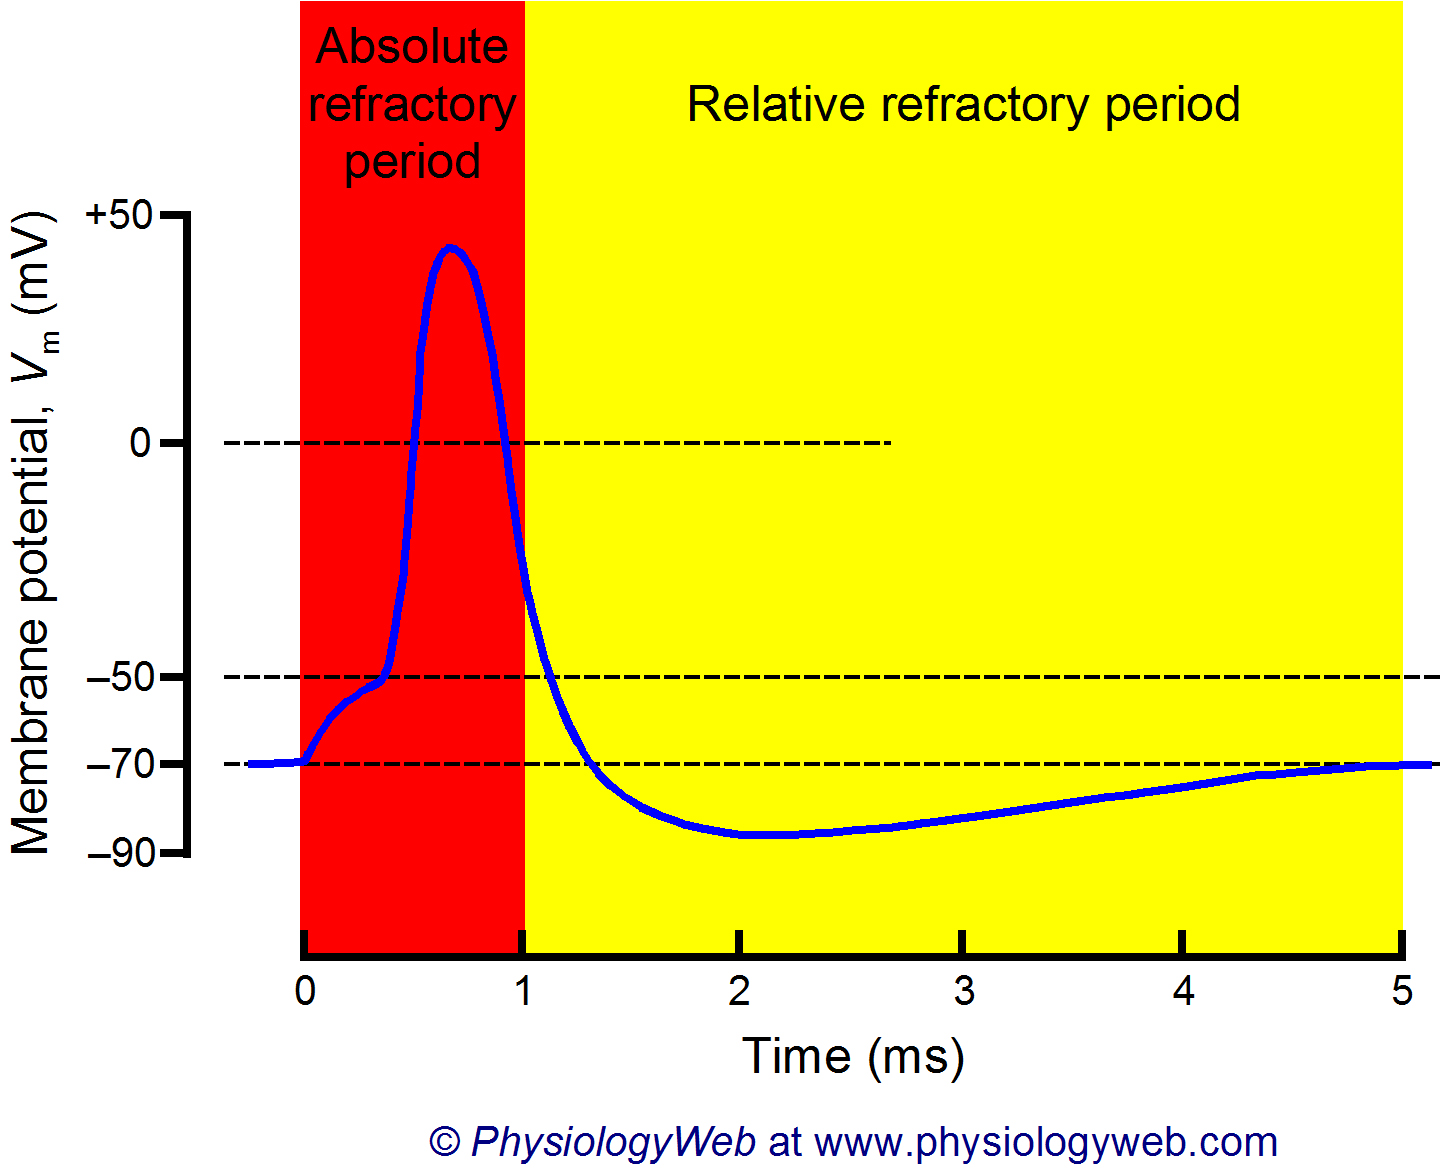 Absolute and relative refractory periods of neurons